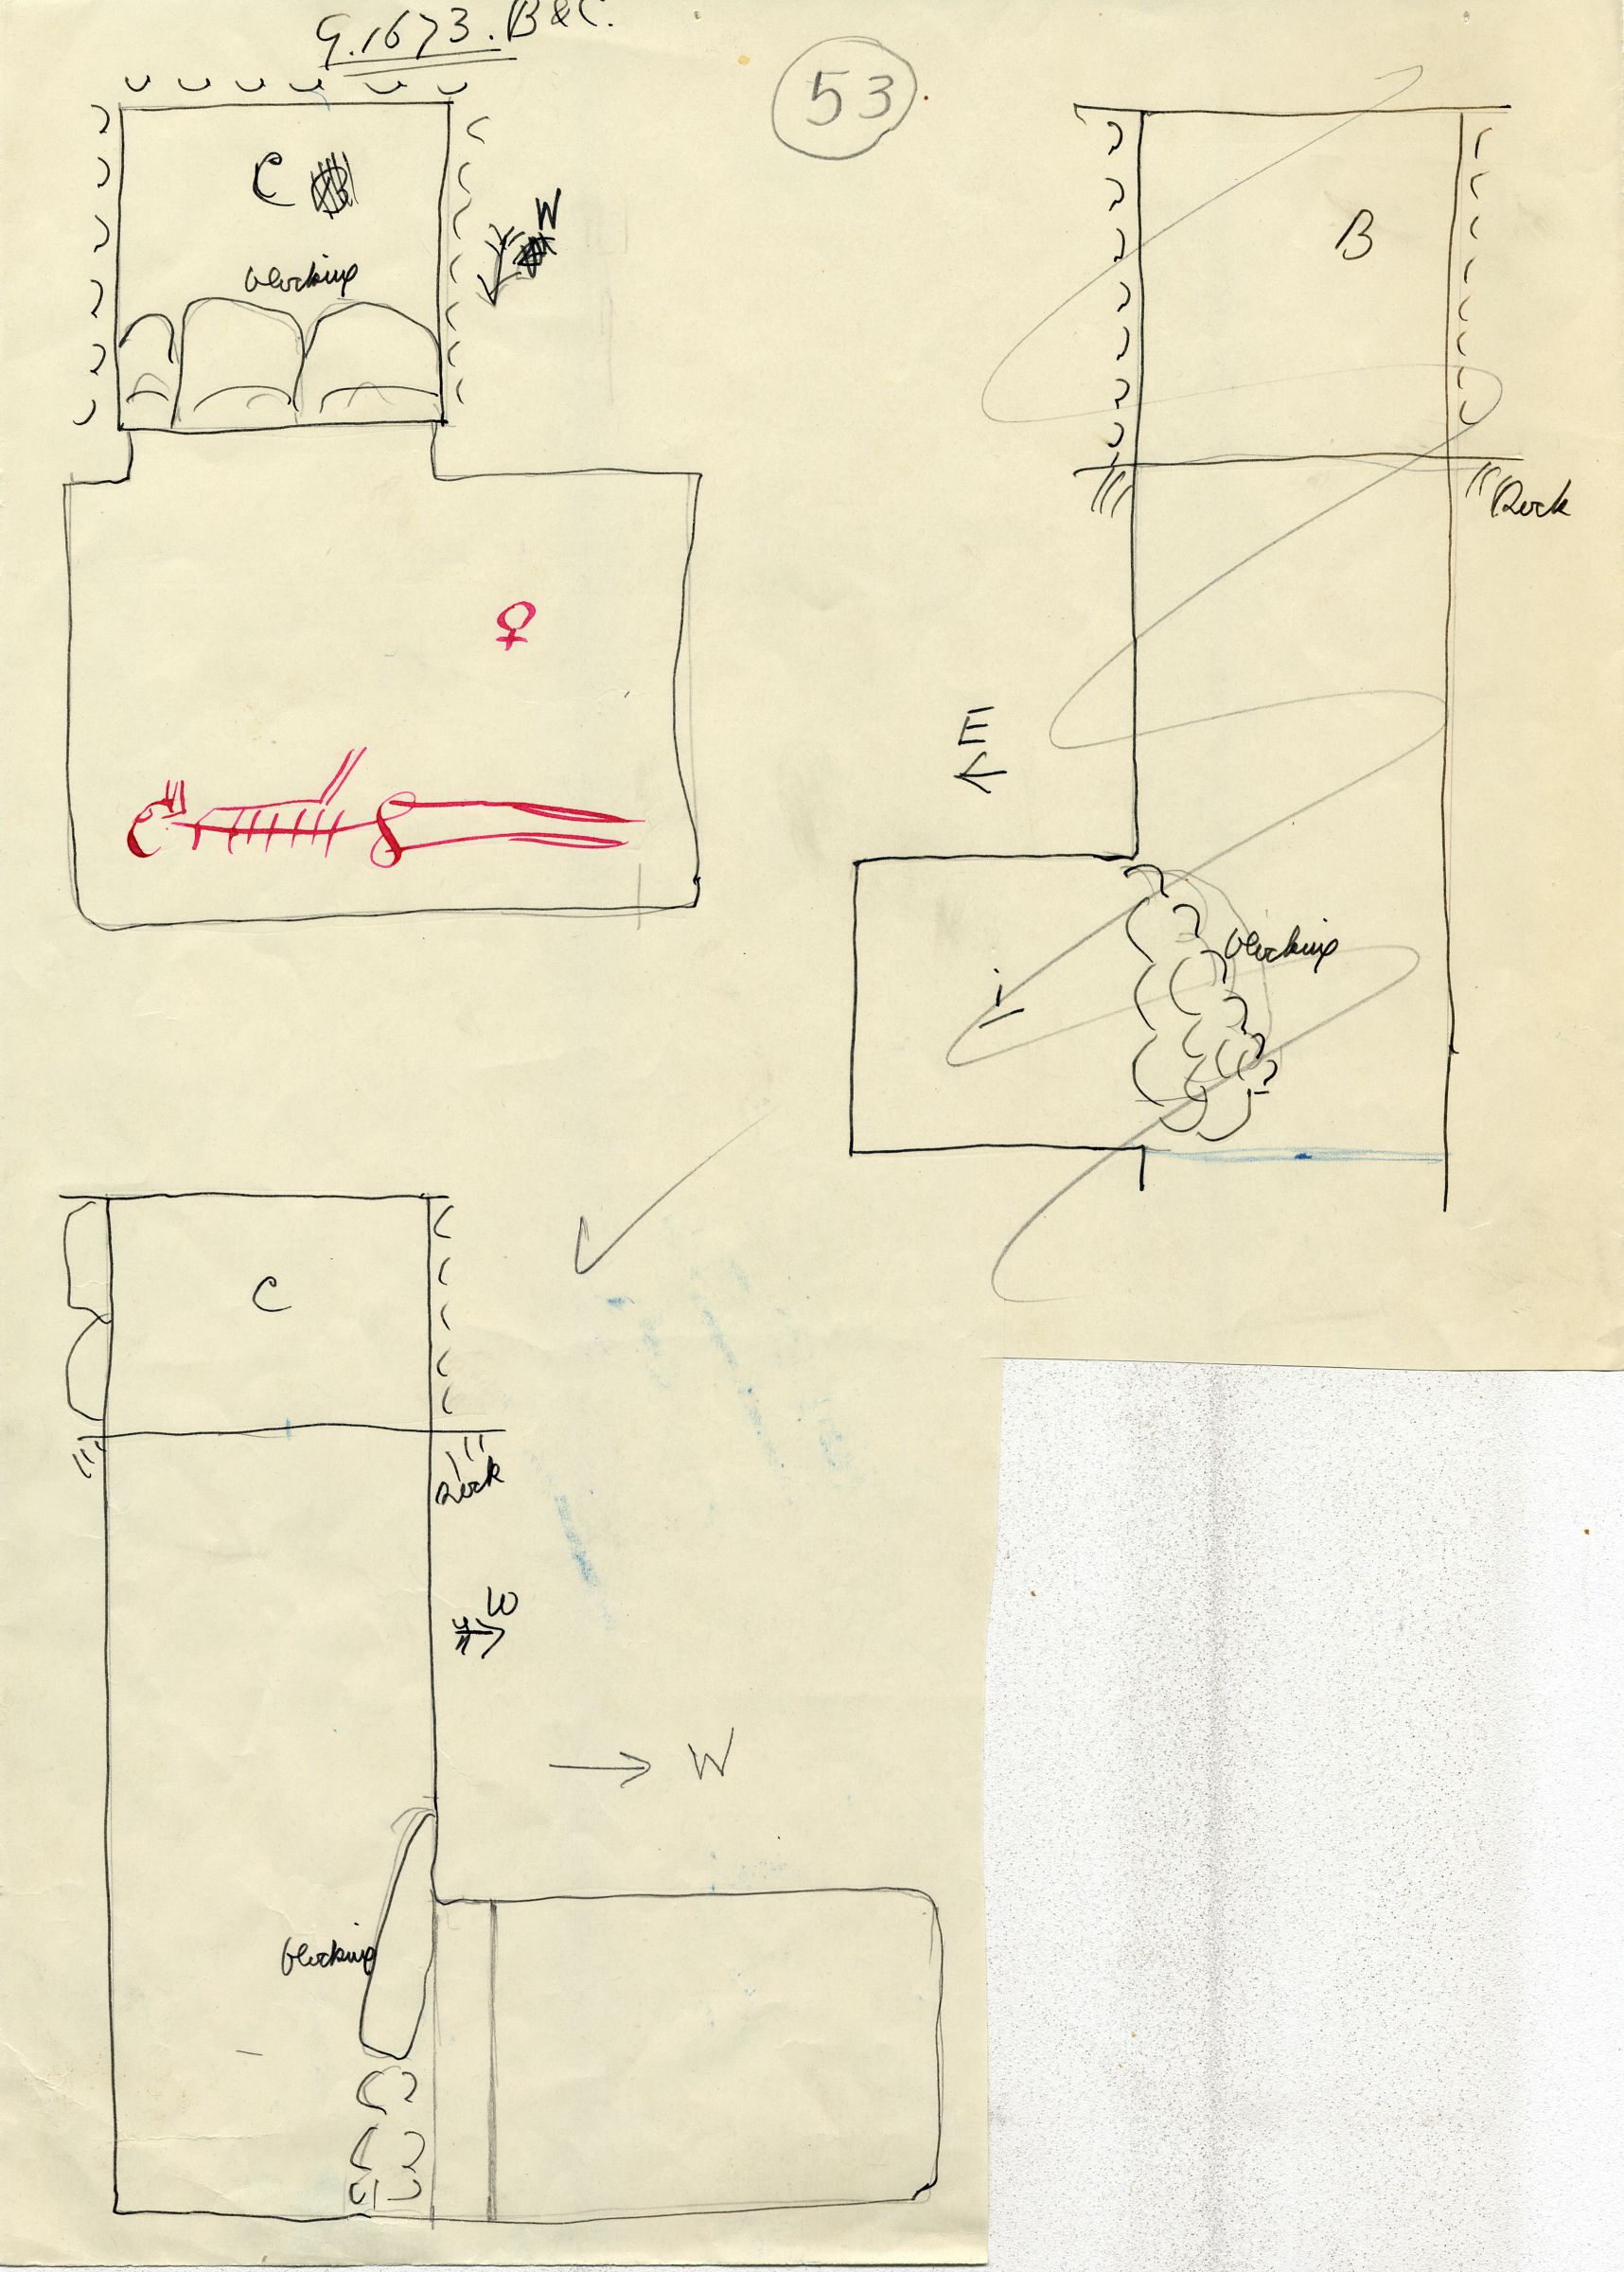 Maps and plans: G 1673, Shaft B (I) and C